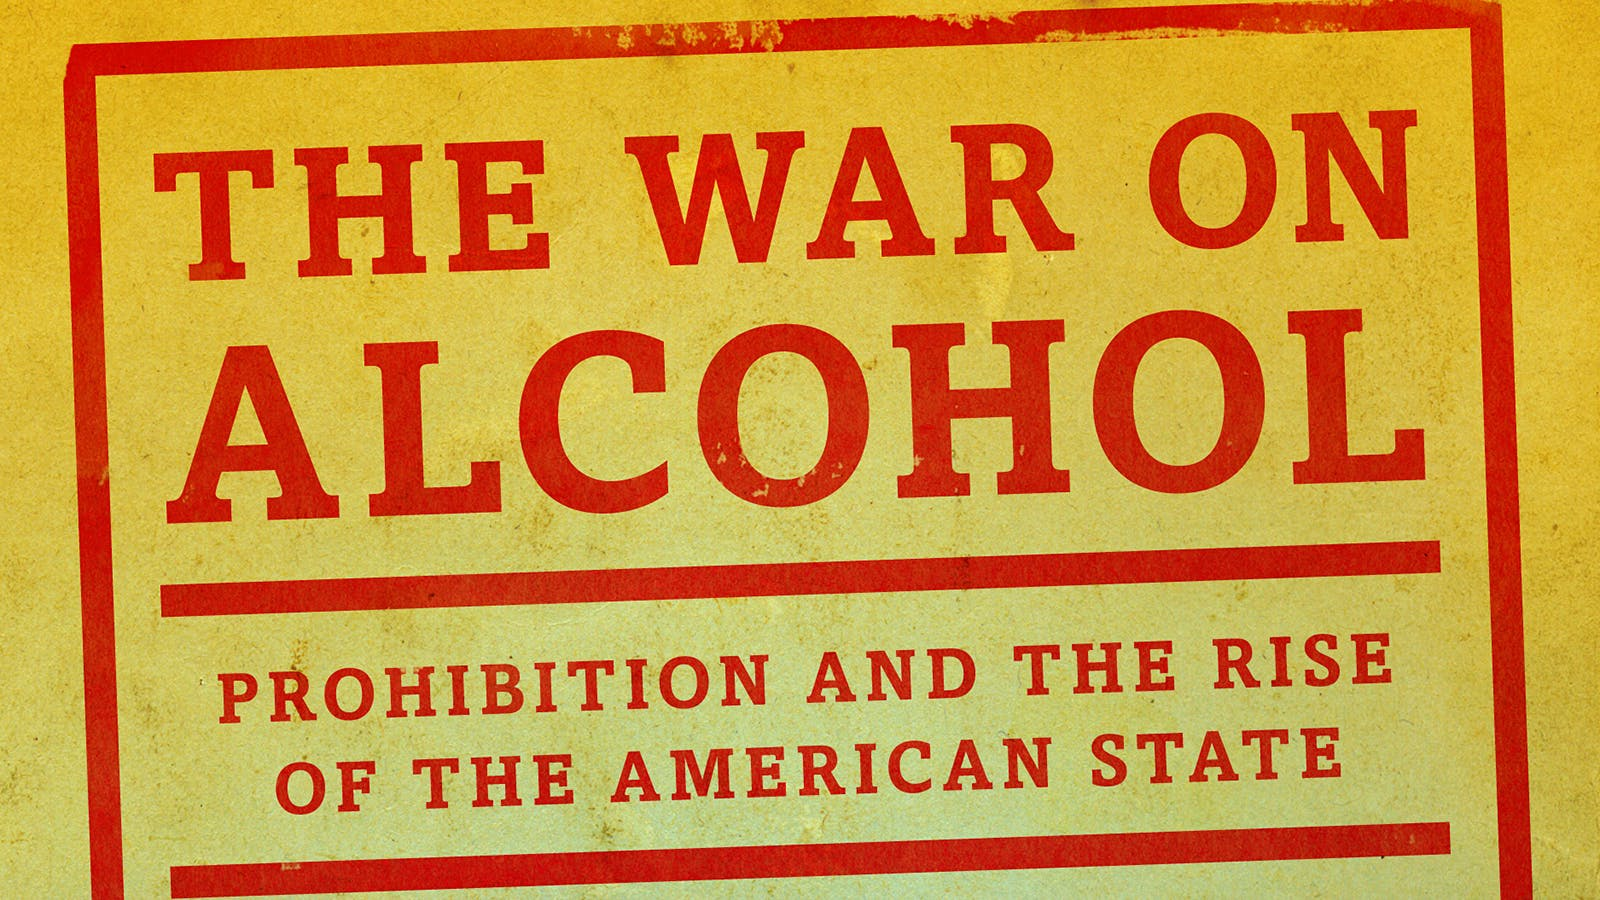 What Led to America's War on Alcohol?